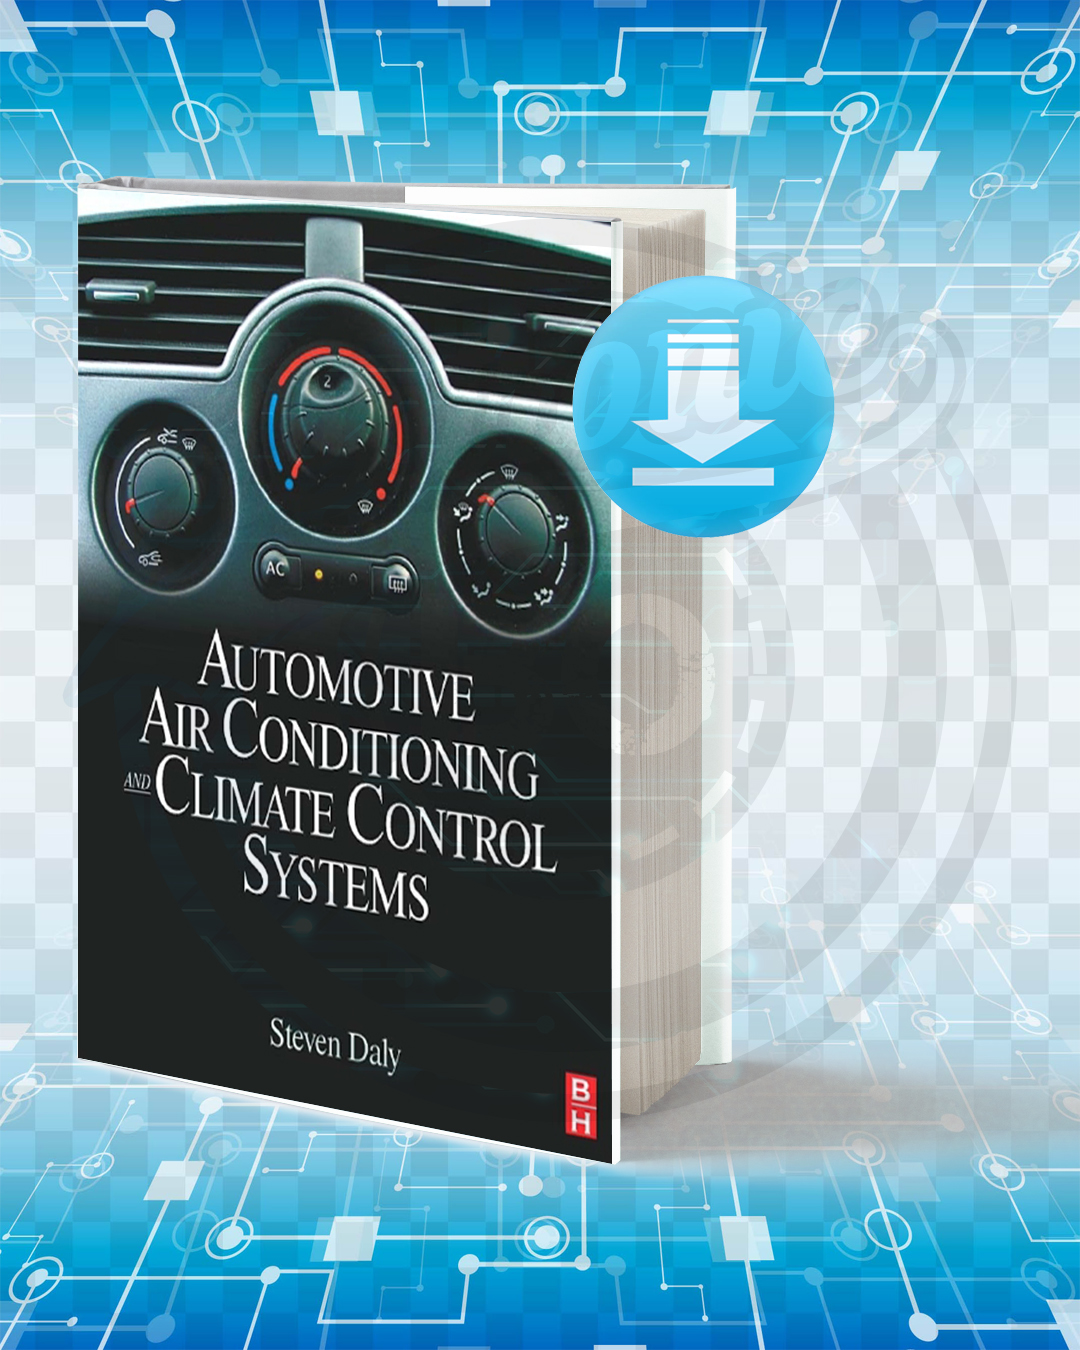 Free Book Automotive Air Conditioning and Climate Control Systems pdf.